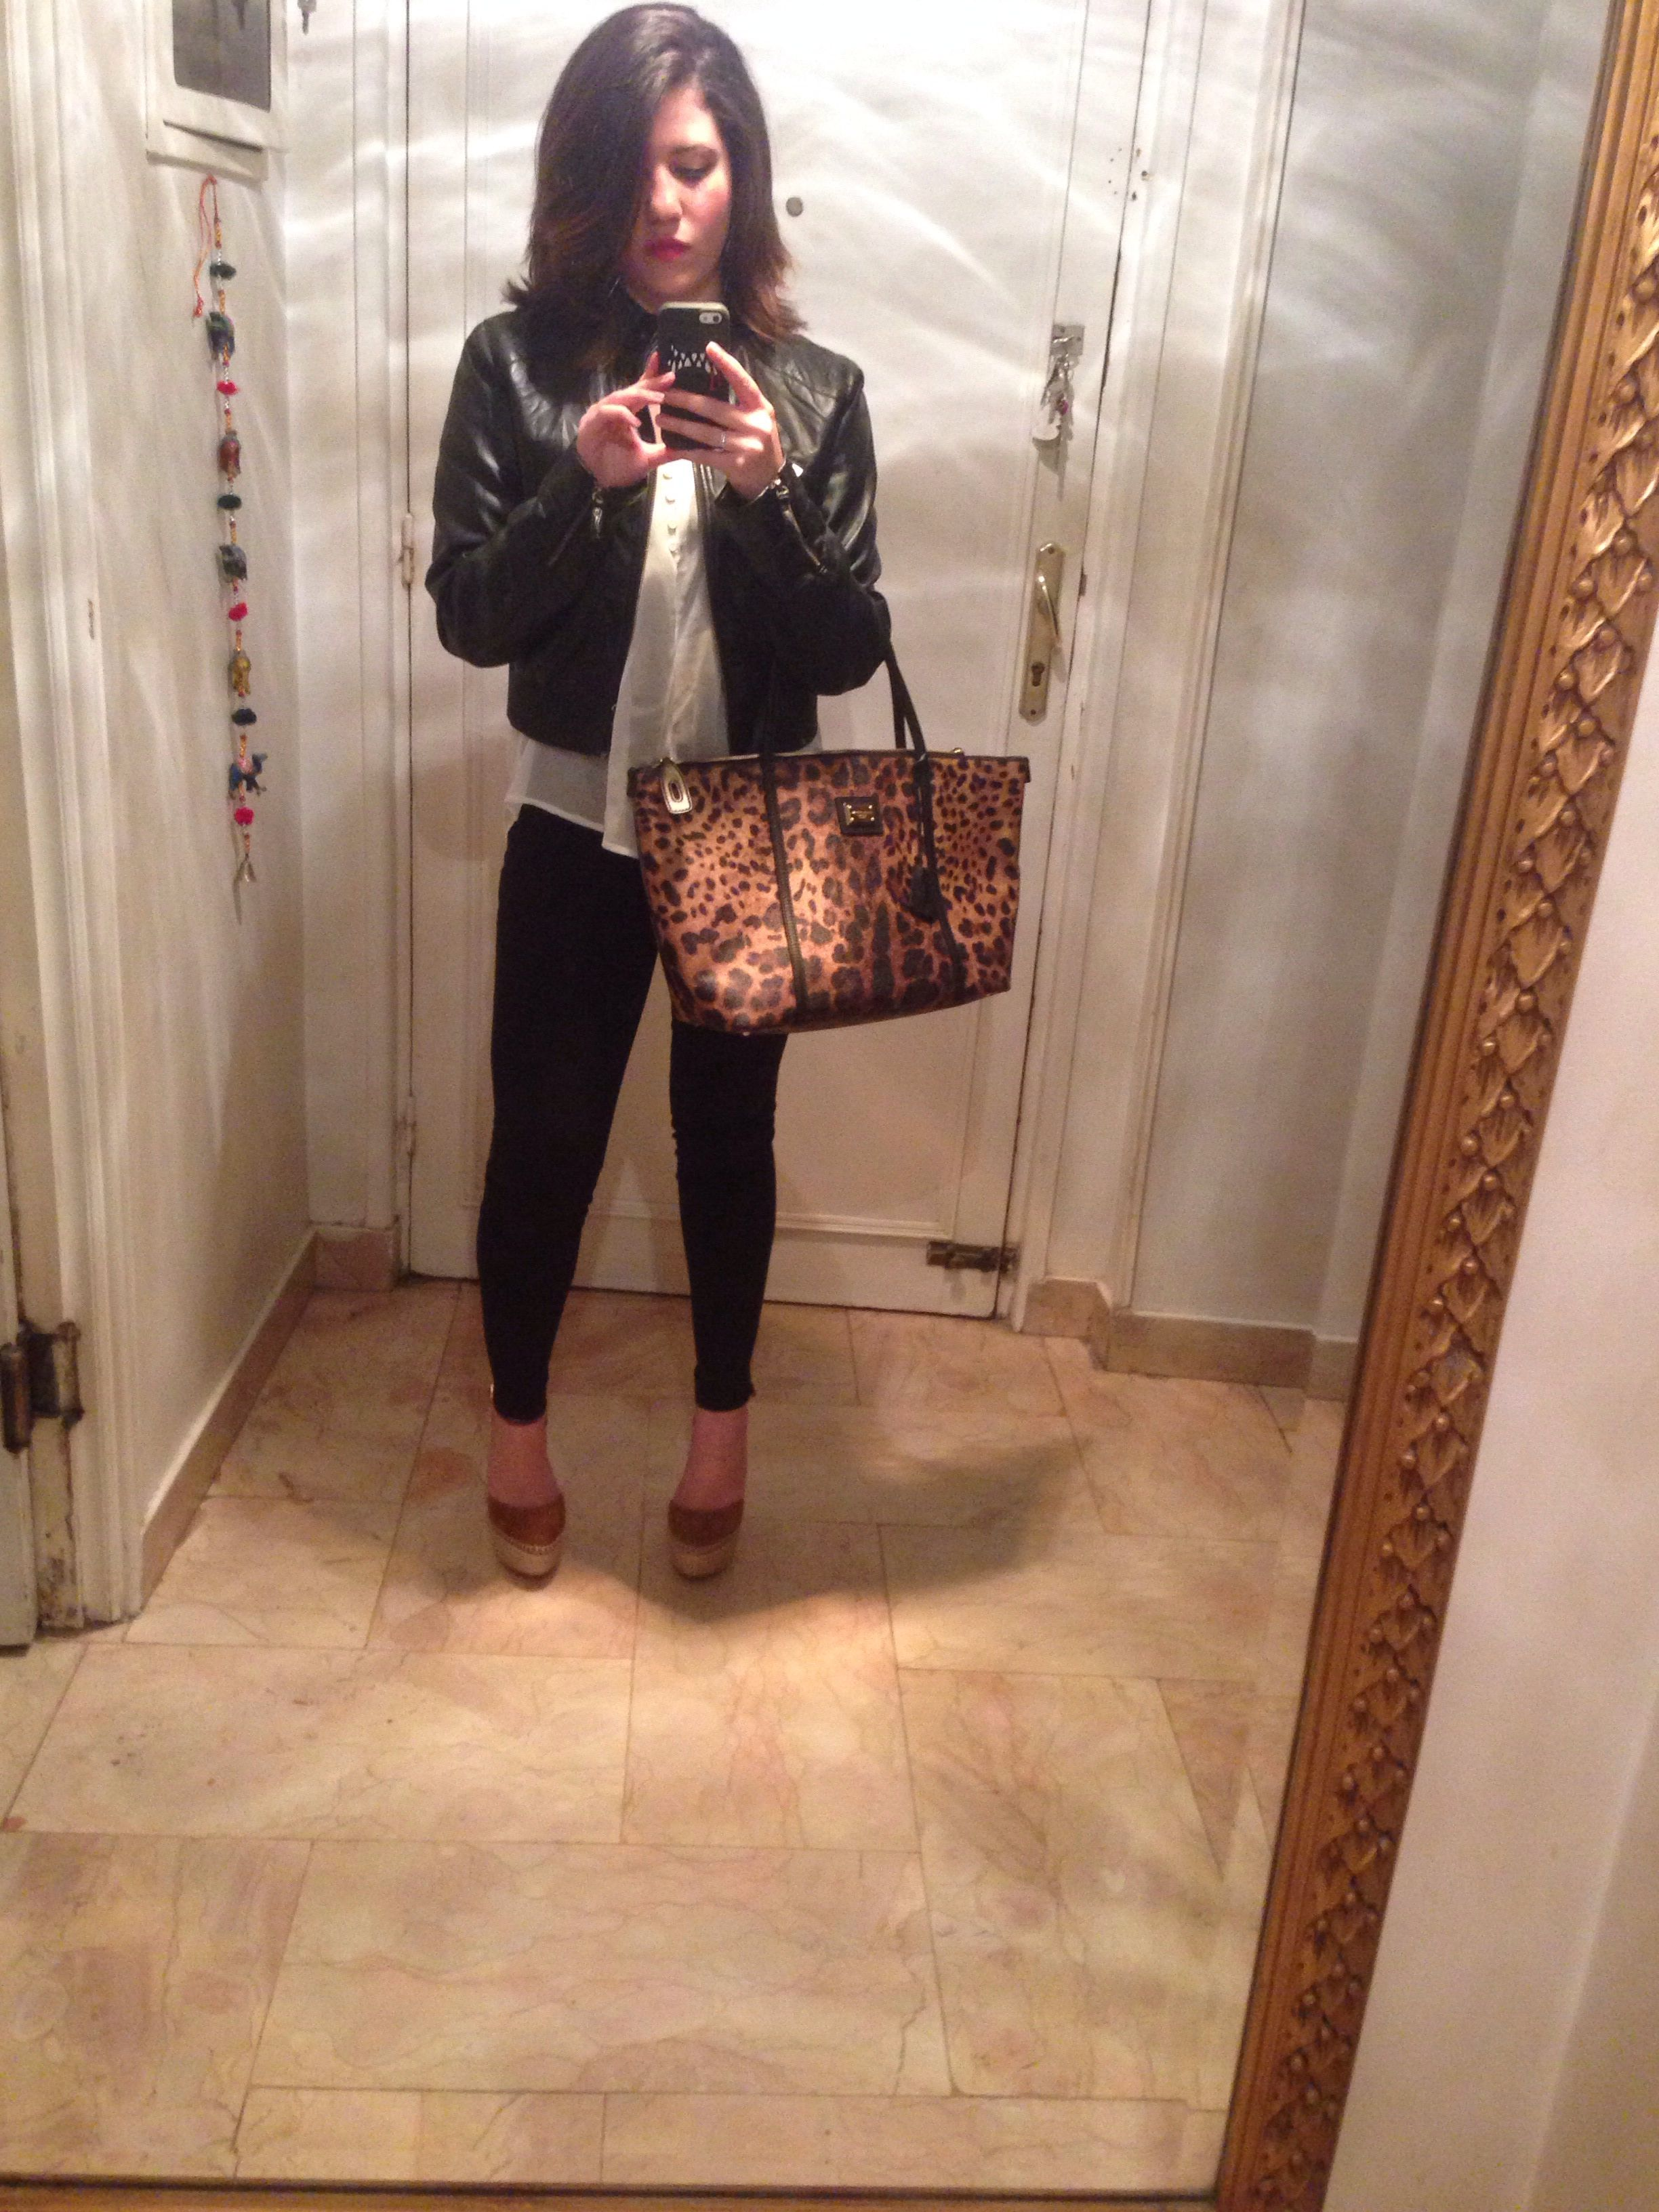 The Leopard bag